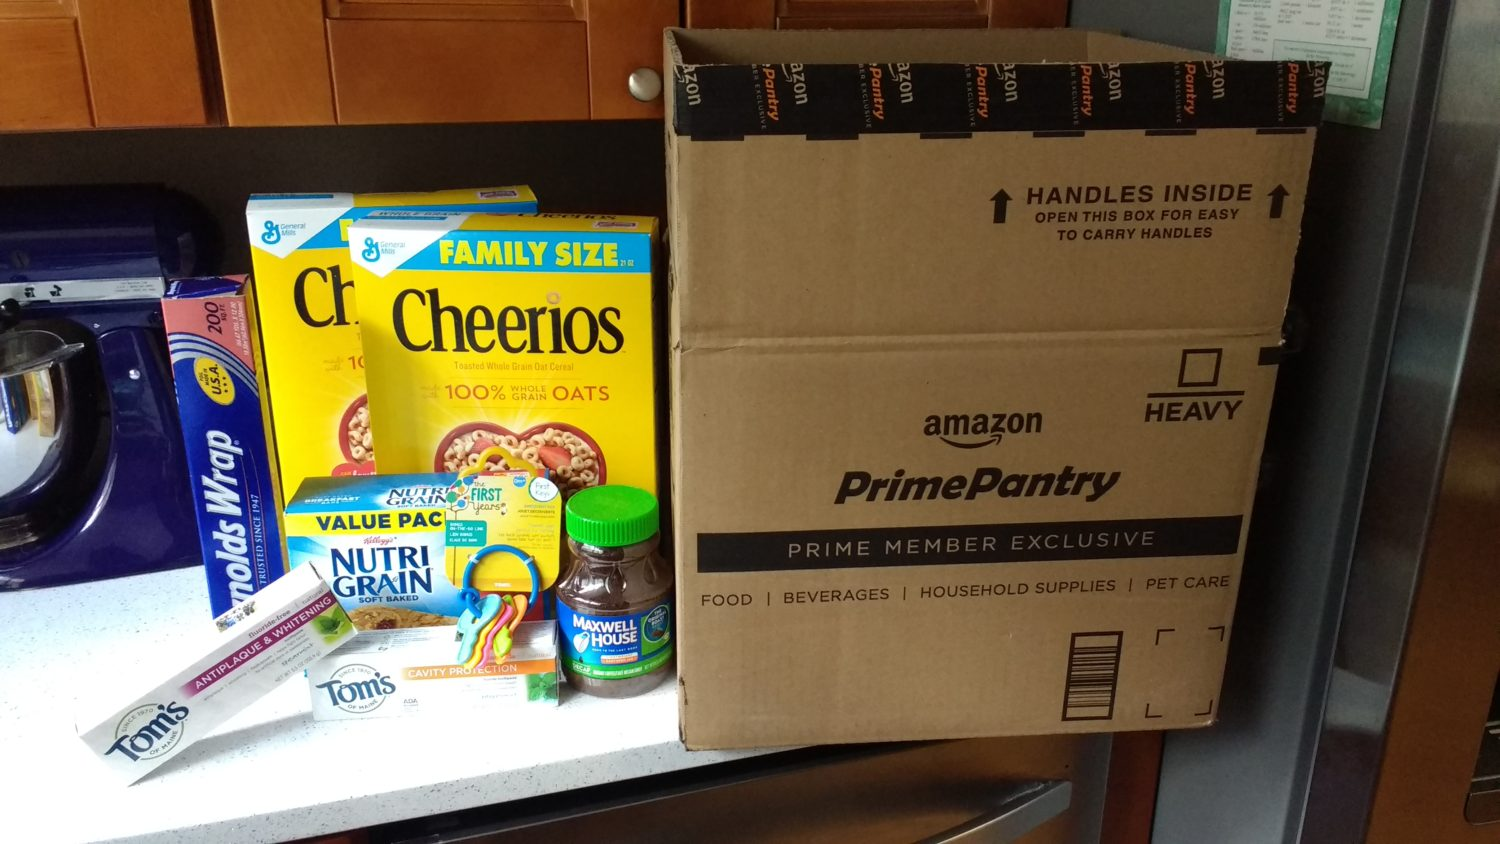 Amazon Prime Pantry box with Cheerios, Reynolds Wrap, Tom's of Maine, Maxwell House, Nutri-Grain, and teether keys